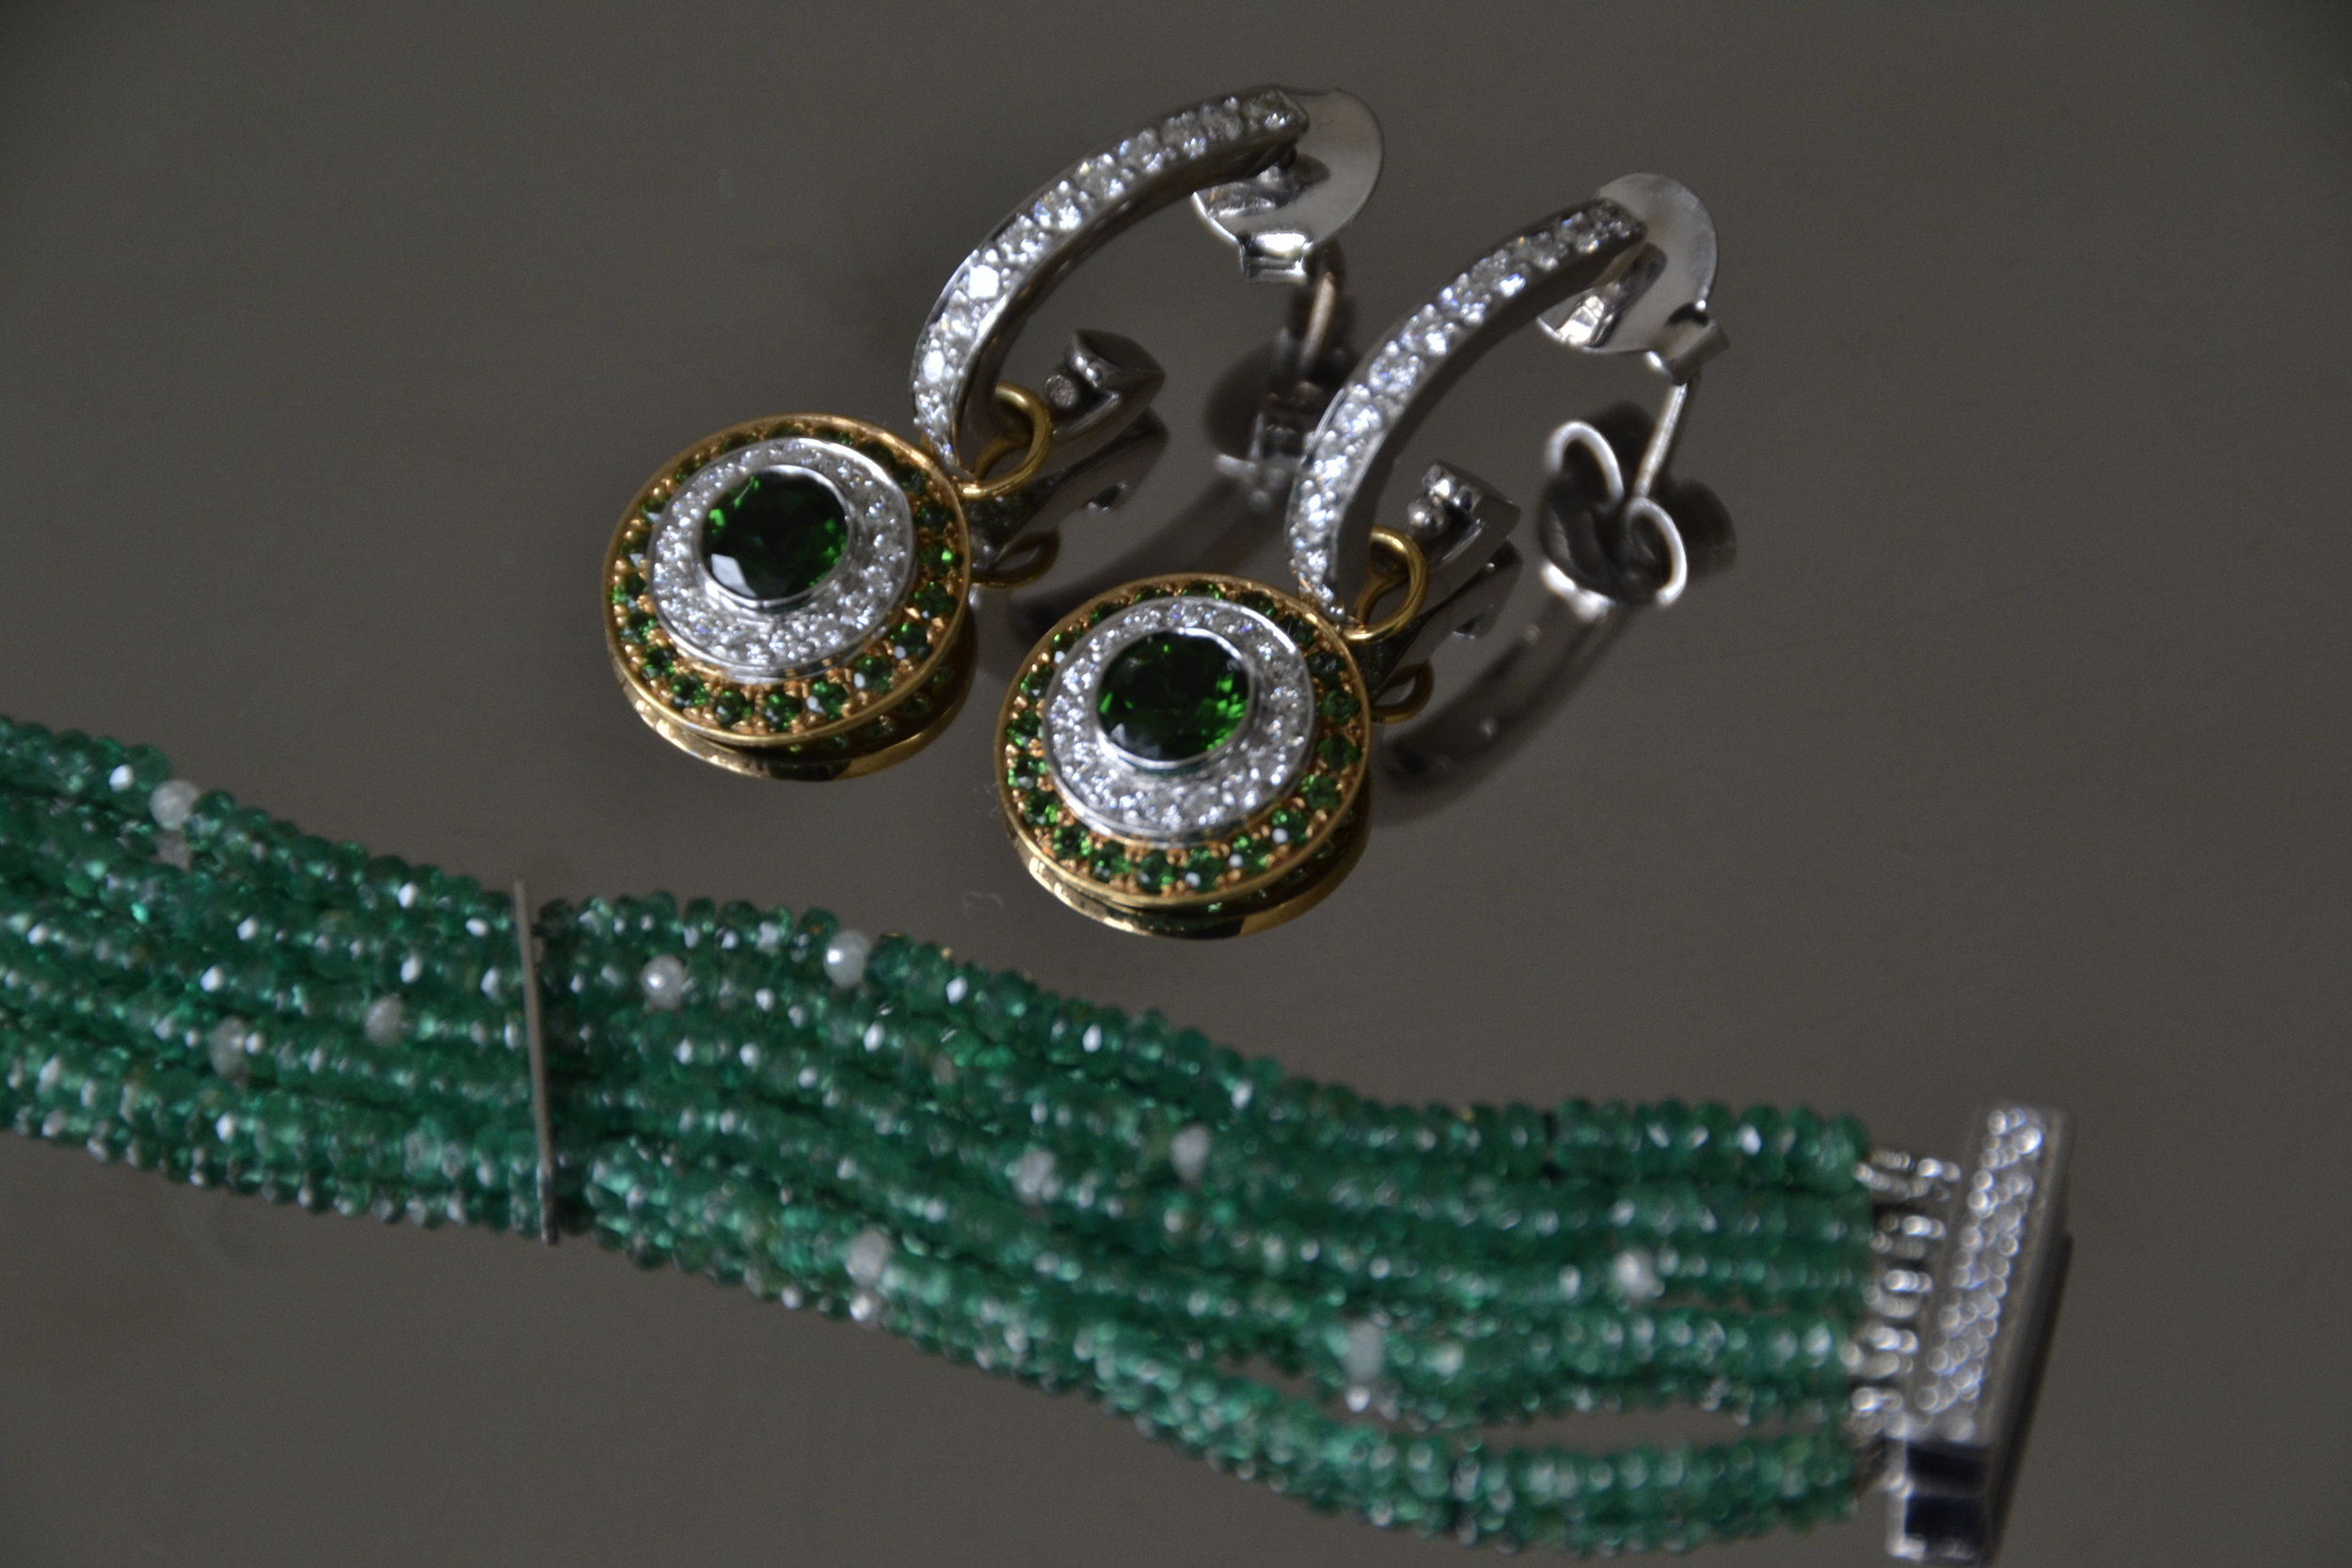 Earrings with green tourmaline and diamonds, bracelet with emerald and diamond beads